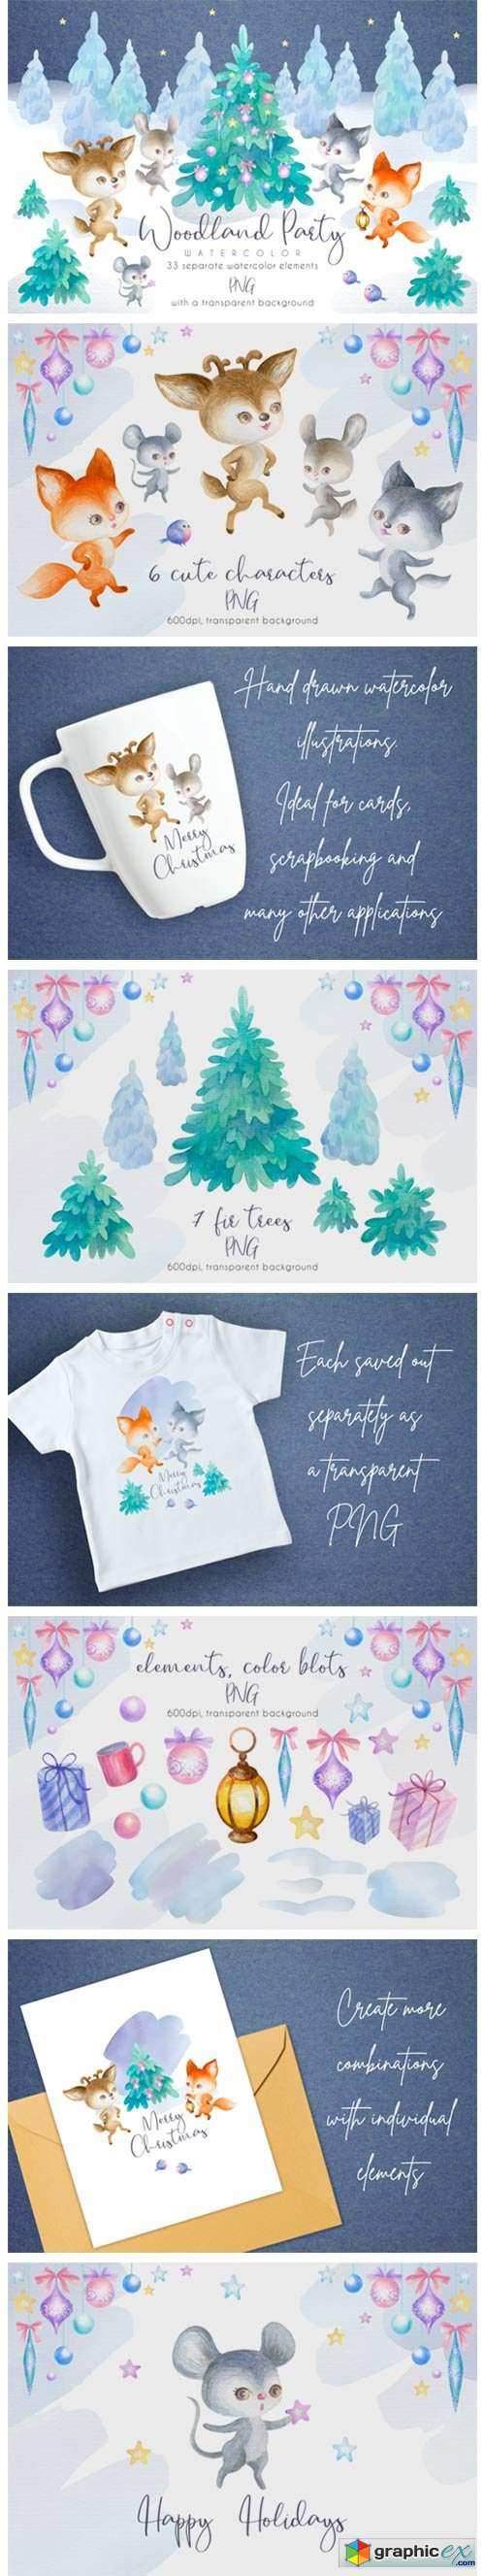 Woodland Party. Watercolor Christmas Set